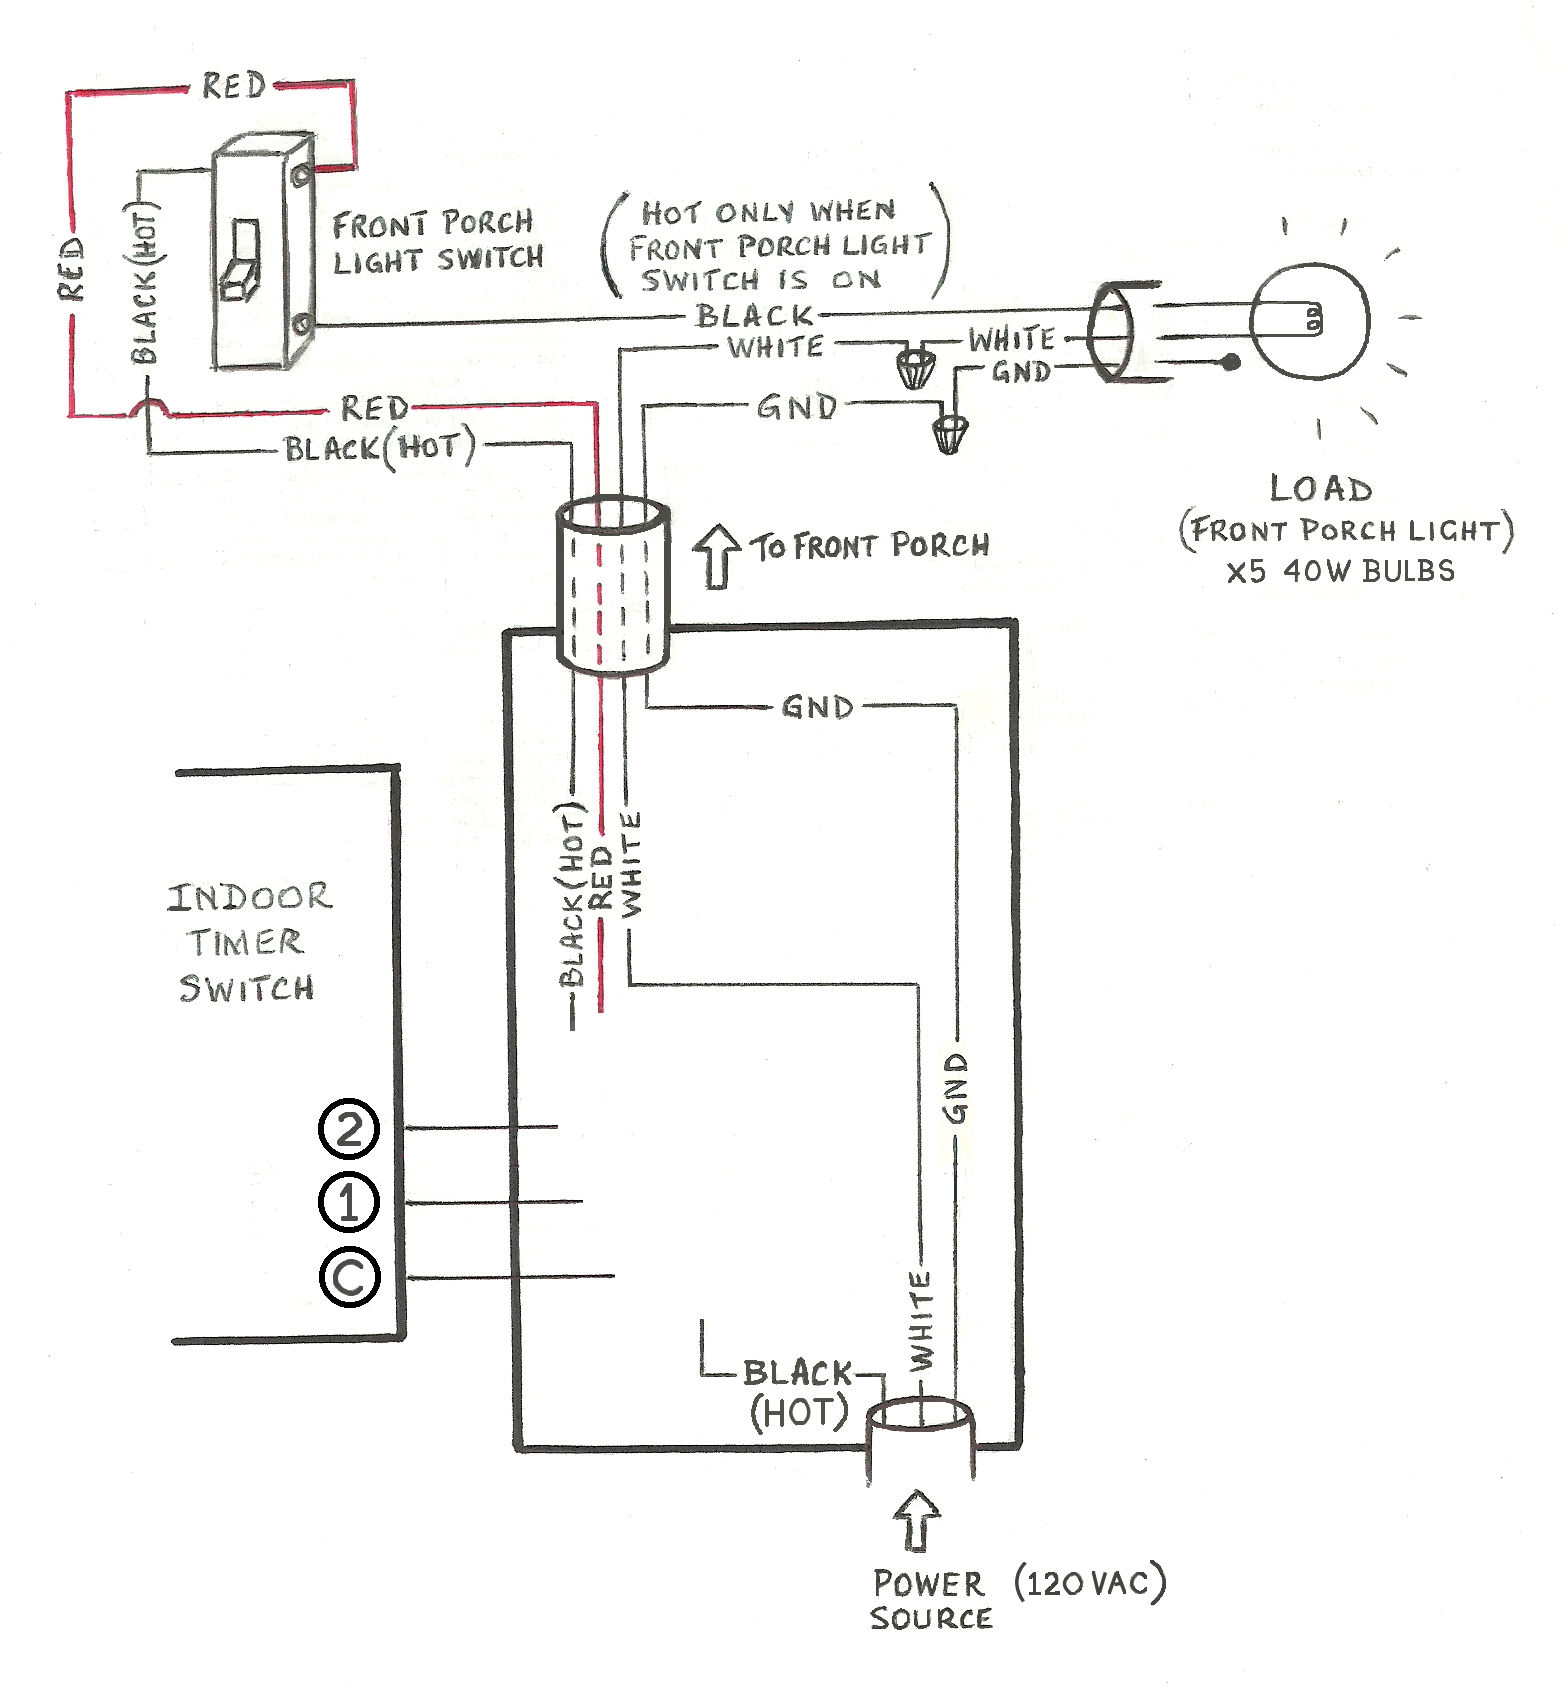 hight resolution of need help wiring a 3 way honeywell digital timer switch